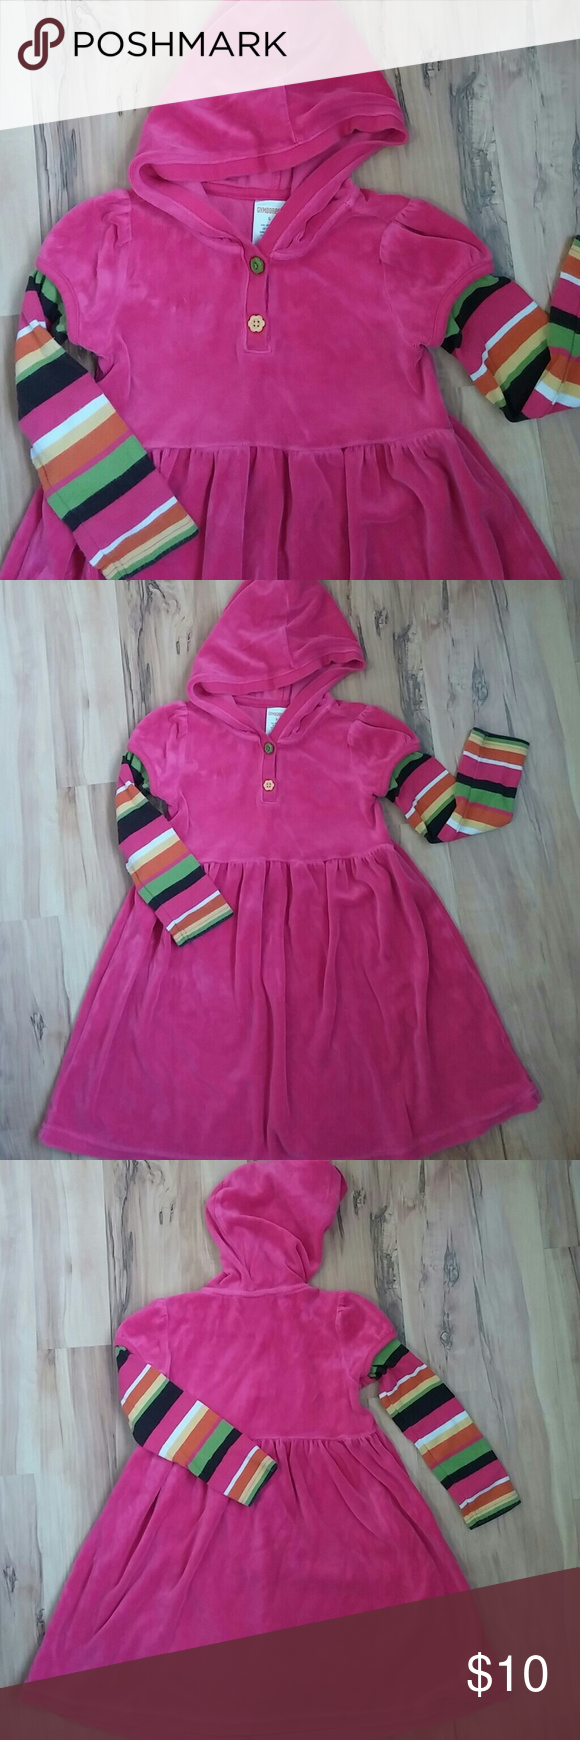 Hooded fleece dress In excellent condition, very soft and still with bright colors. It fits a girl size 5. Gymboree Shirts & Tops Sweatshirts & Hoodies